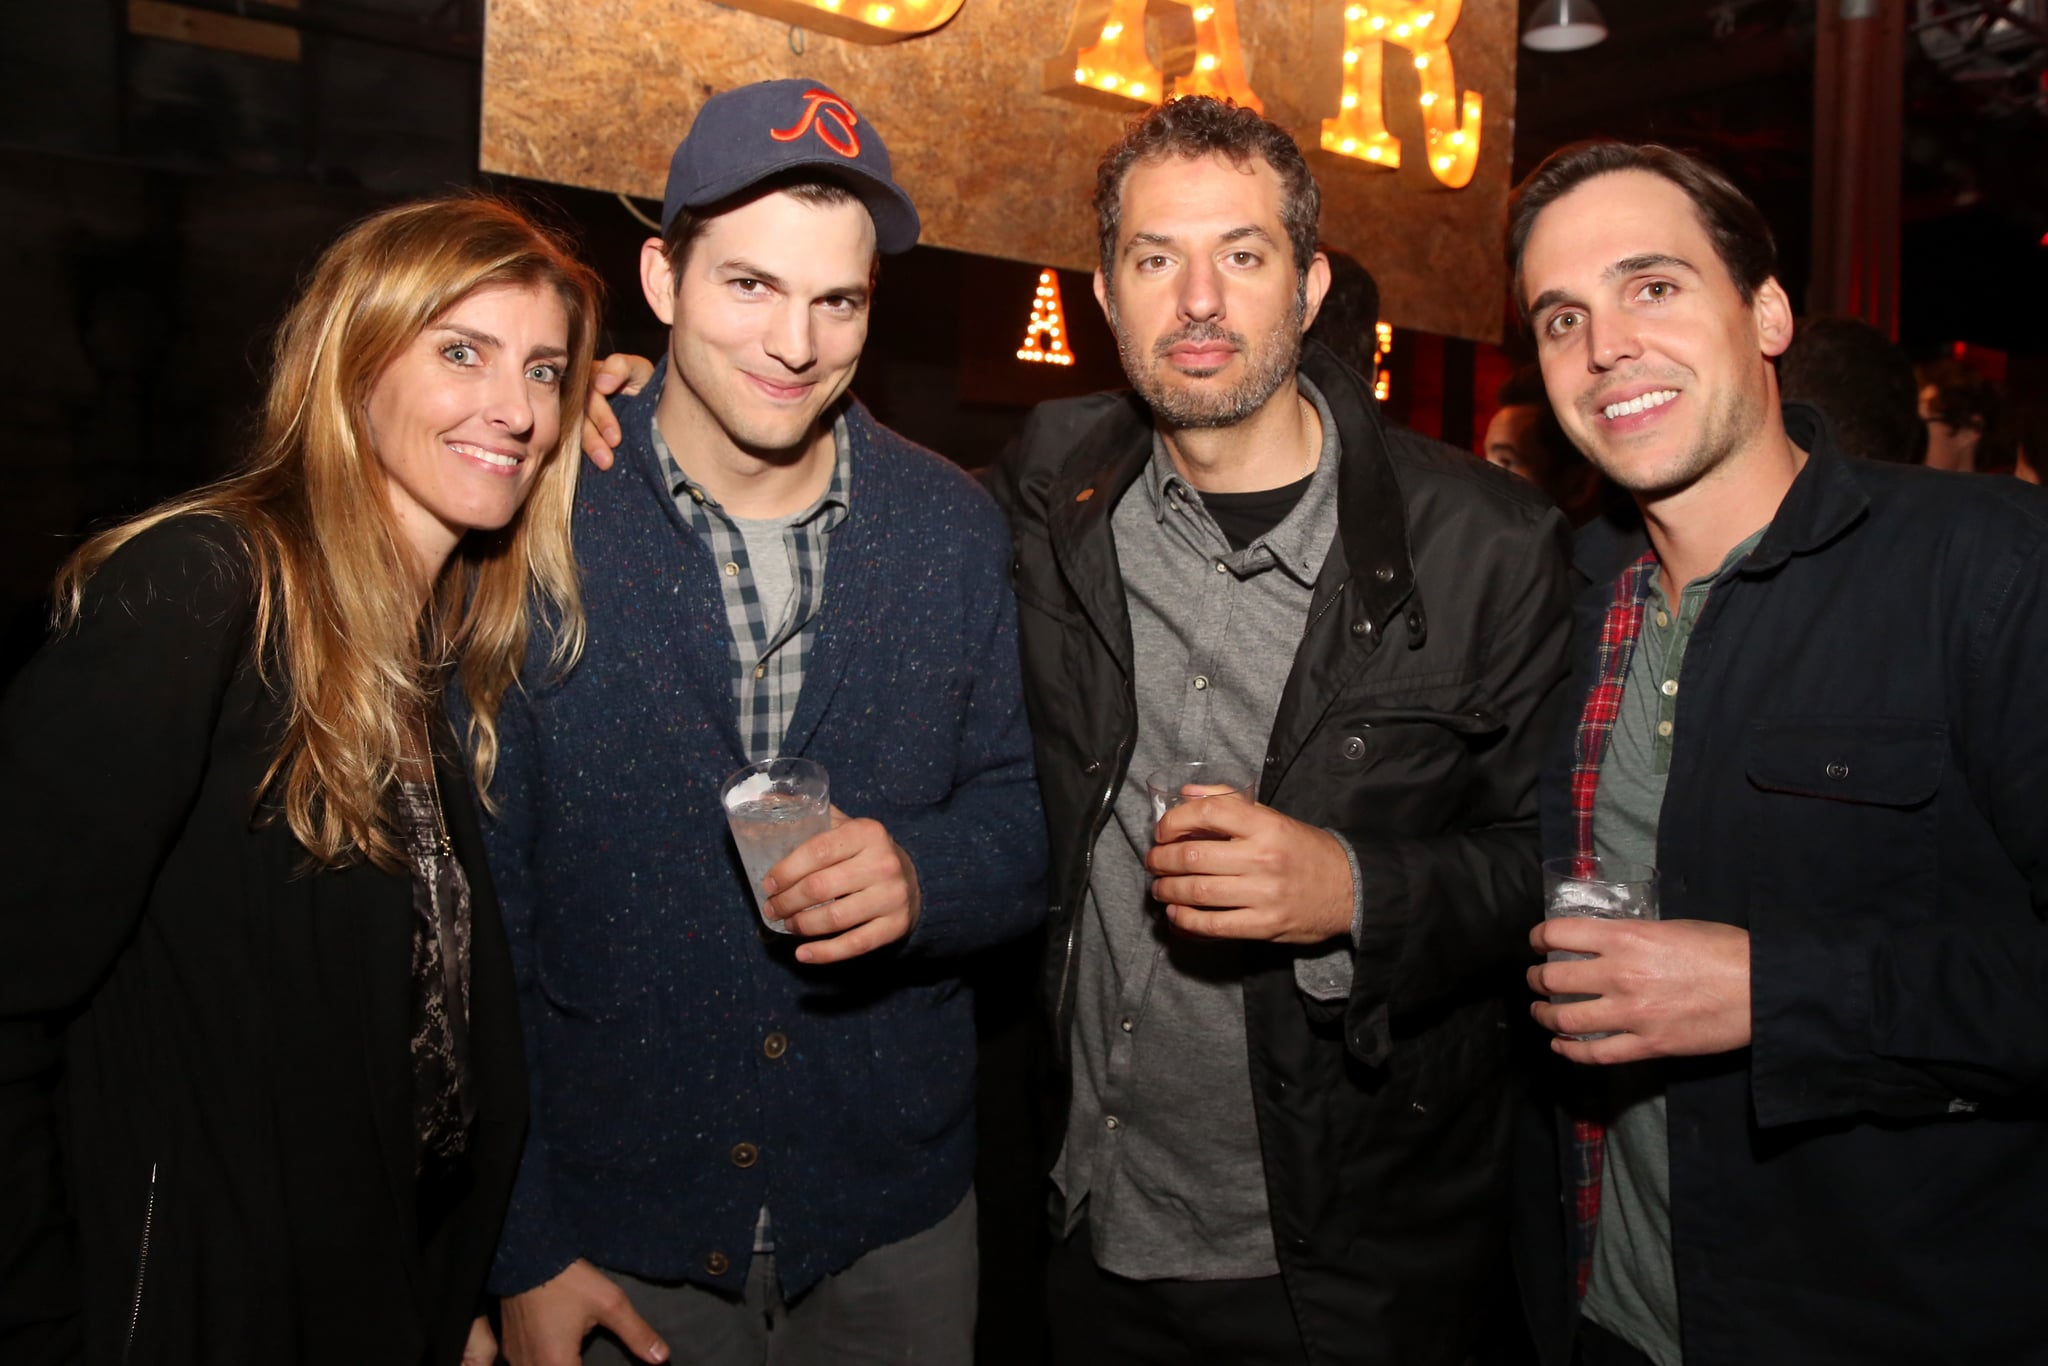 Ashton Parties at SXSW as Mila Steps Out With Her Sparkler